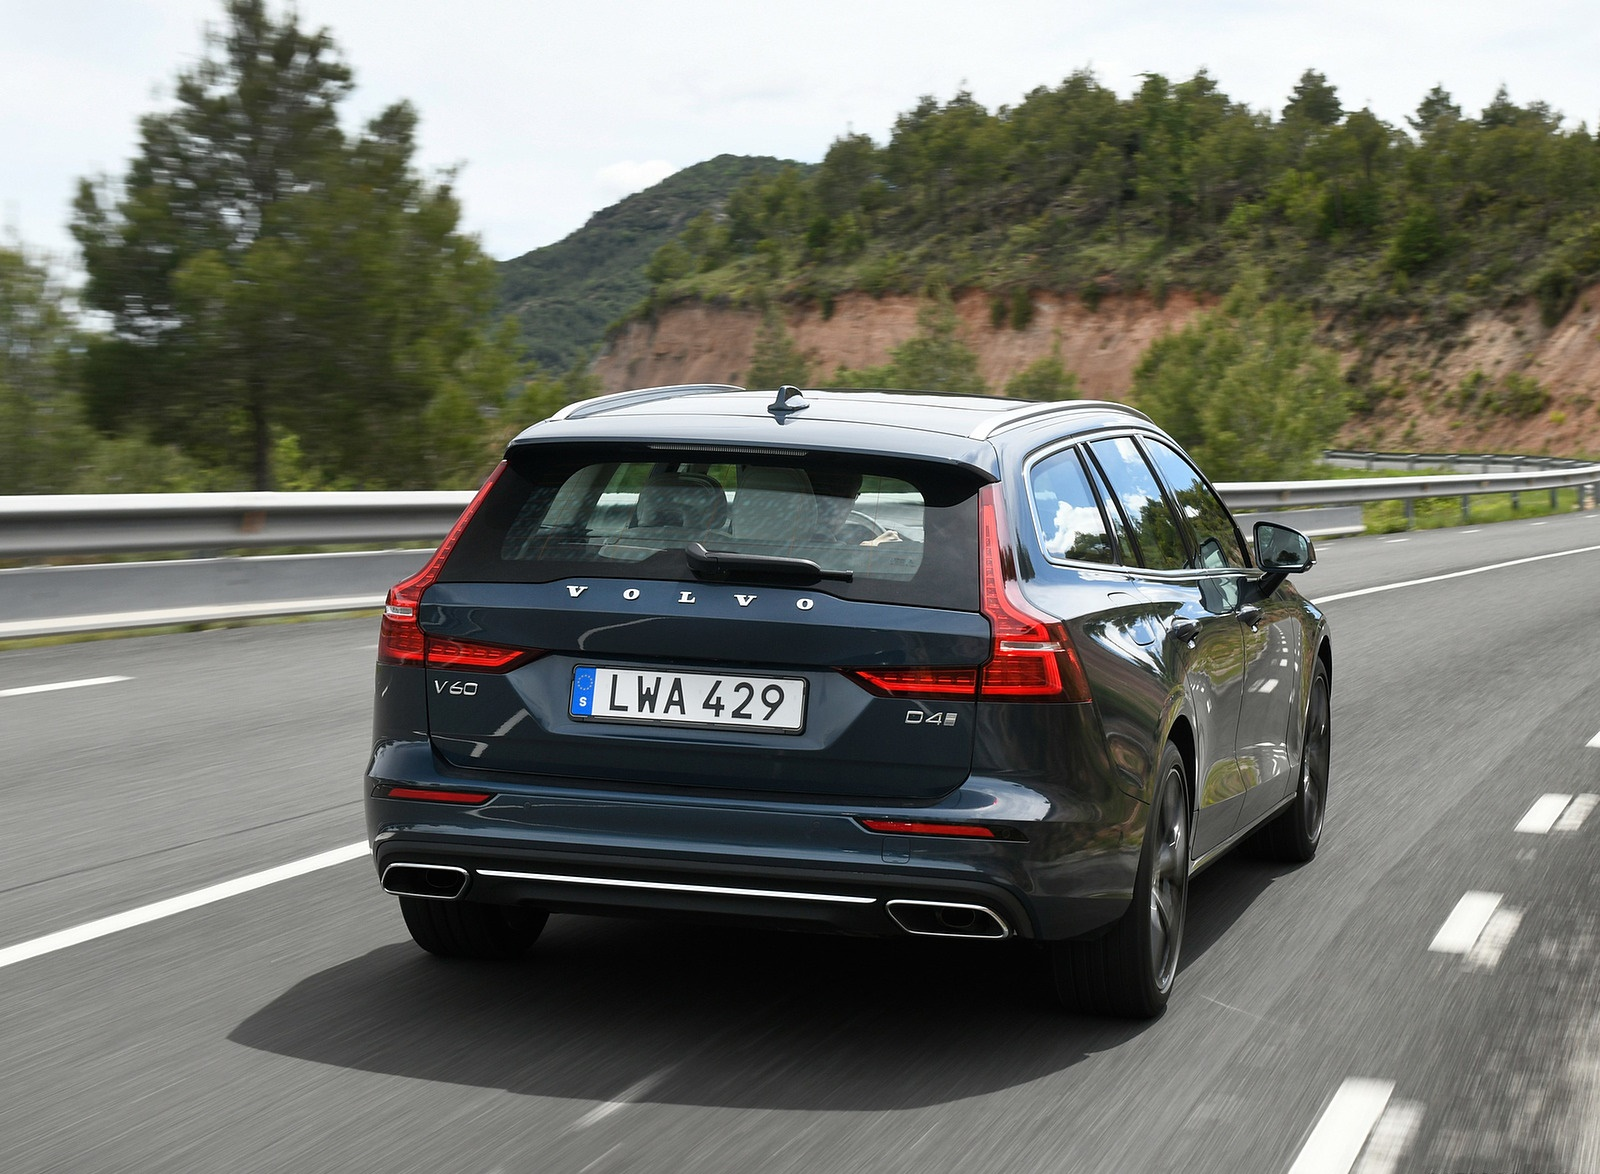 2019 Volvo V60 Rear Wallpaper (10)